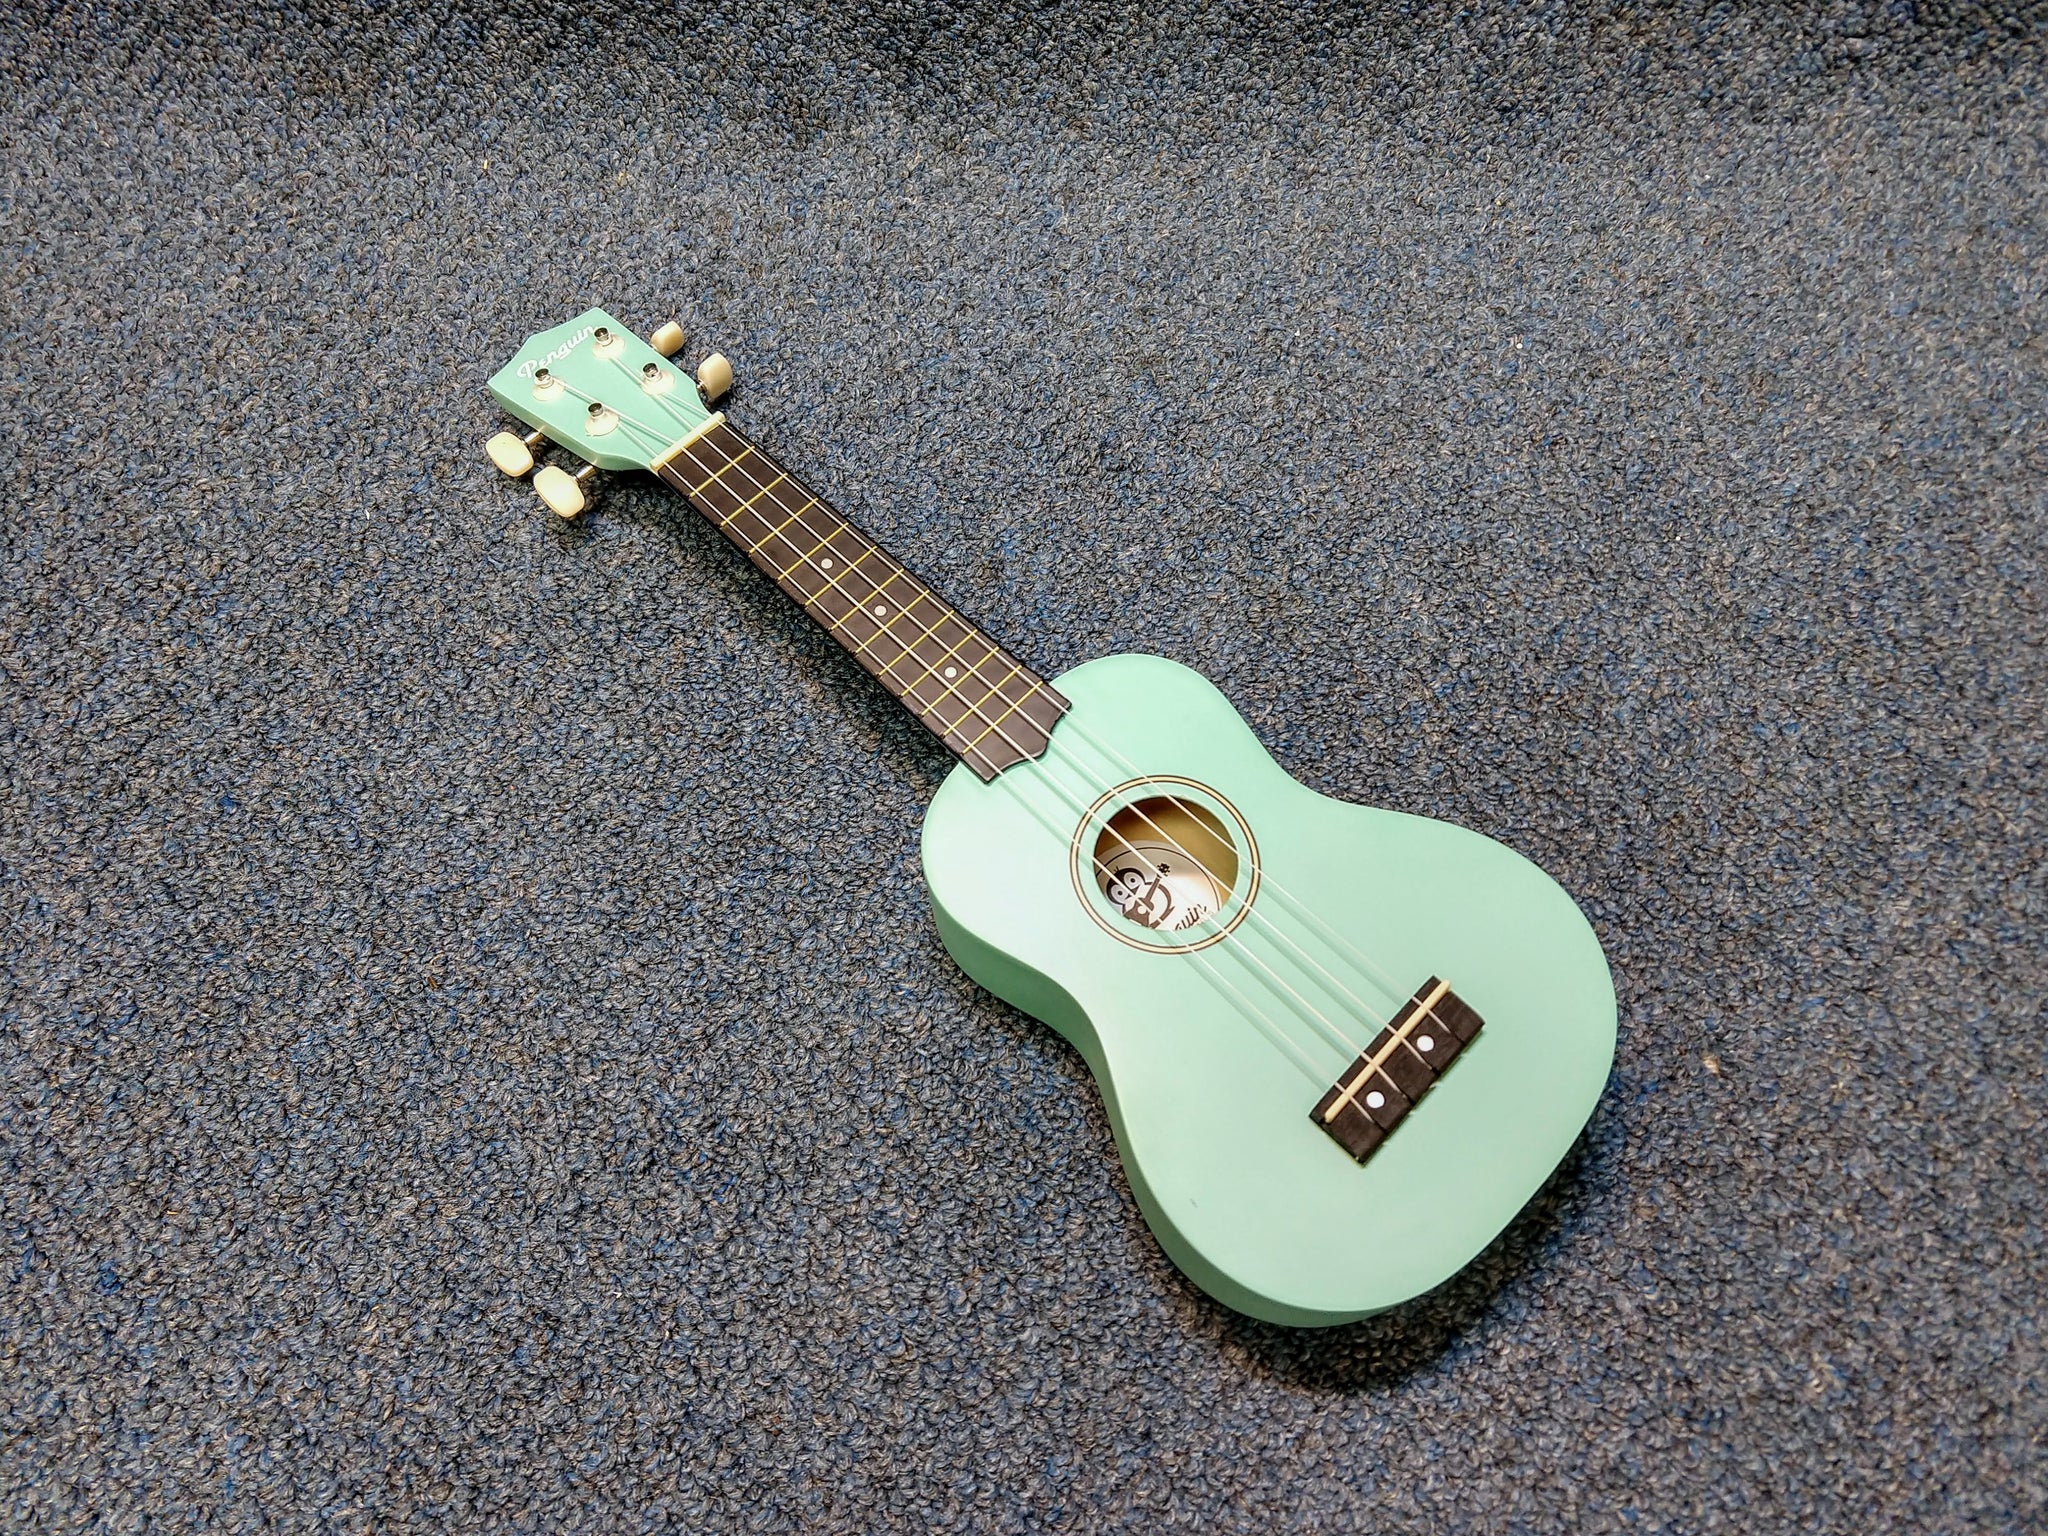 NEW Amahi PGUKLB Soprano Penguin Ukulele Uke Light Blue With Cover